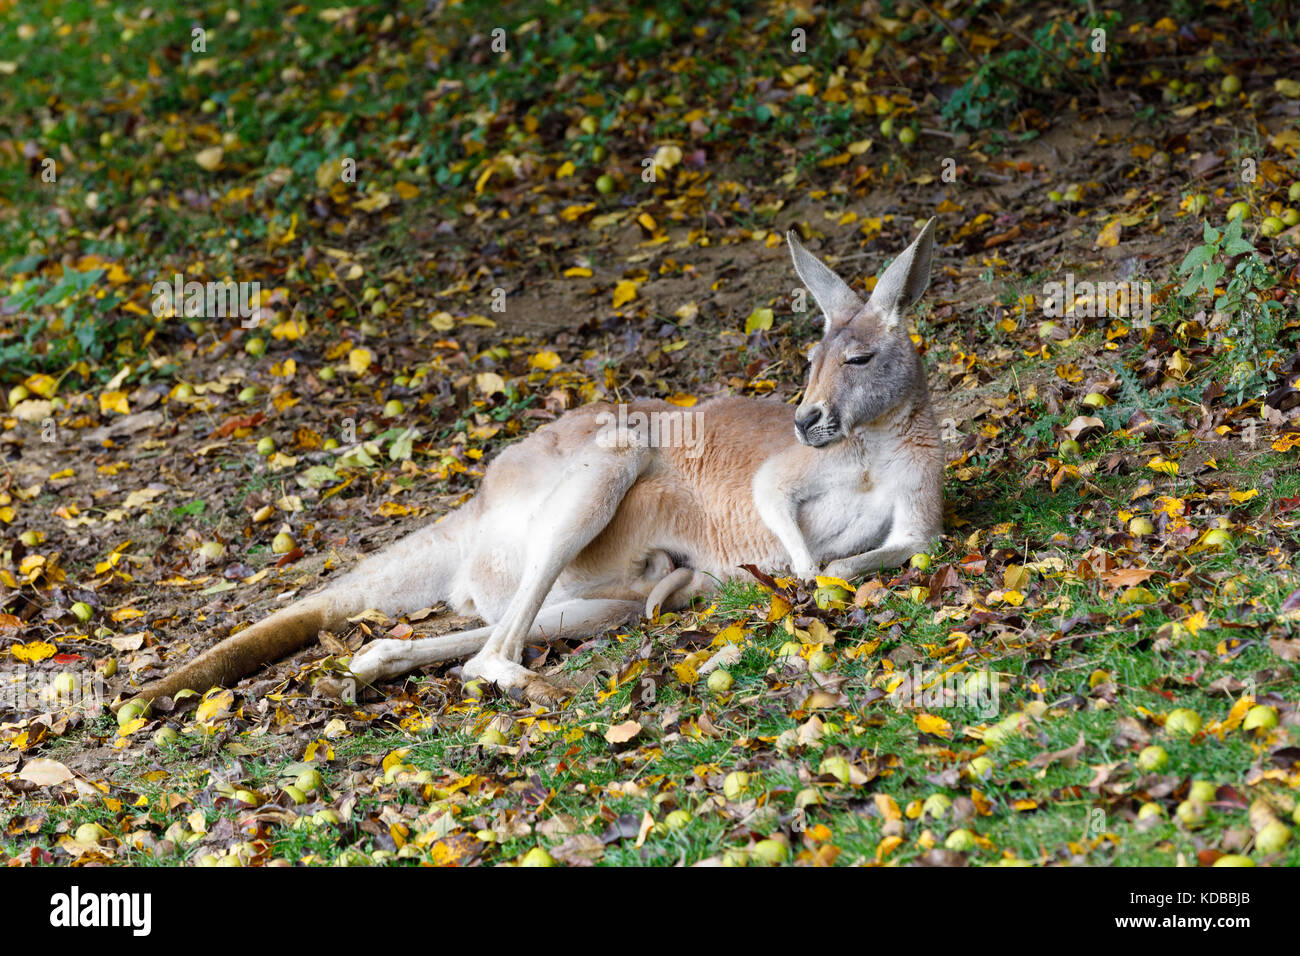 Red Kangaroo Megaleia Rufa One Of The Biggest Kangaroo With Small Baby Hidden In Bag